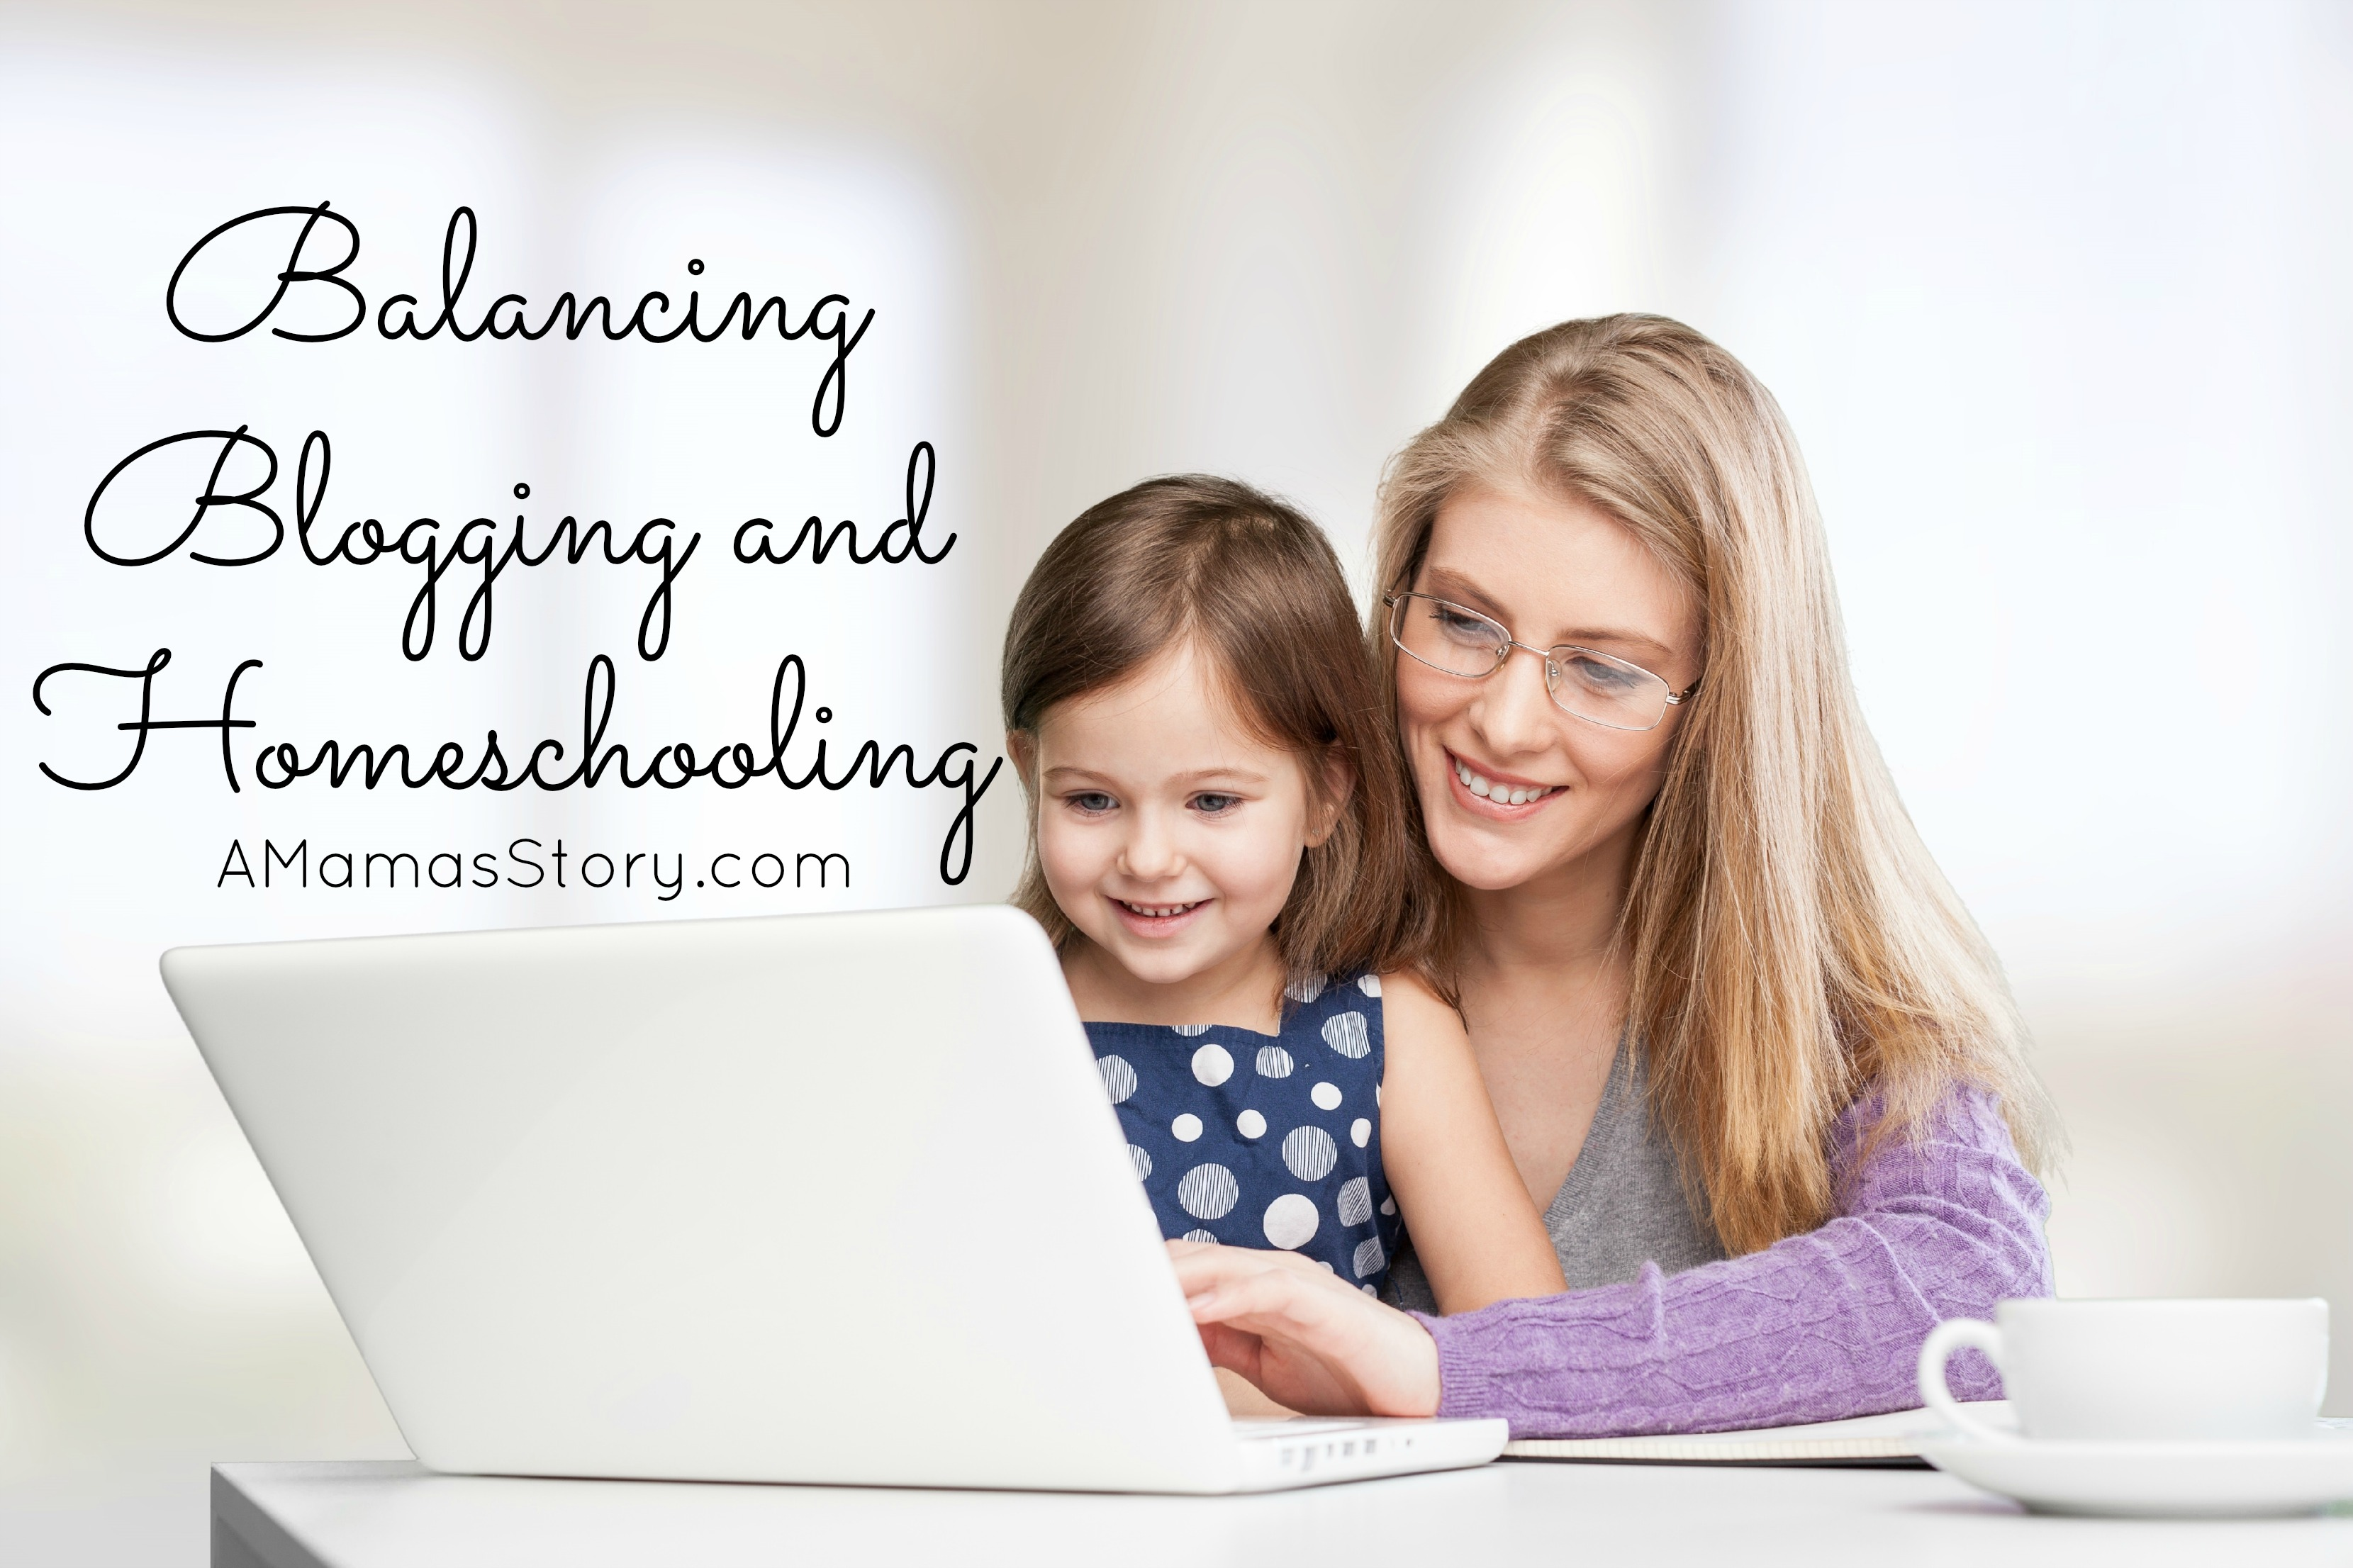 Balancing Blogging While Homeschooling